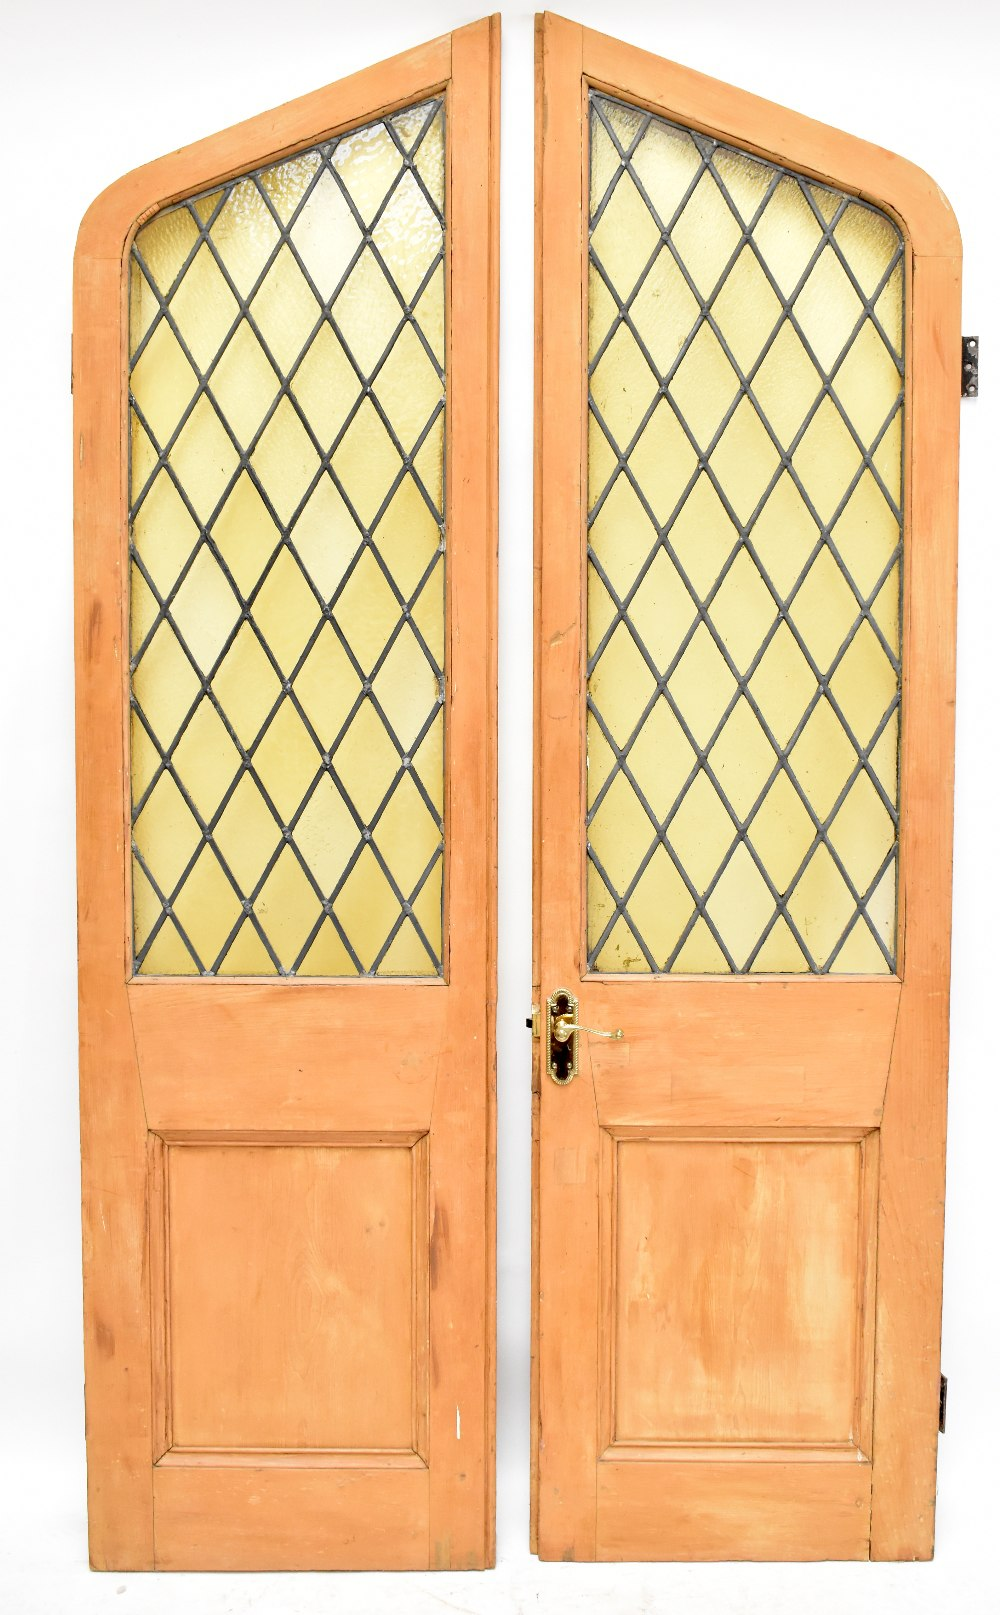 An early 20thcentury large pair of carved pine arched doors, each inset with a leaded stained glass